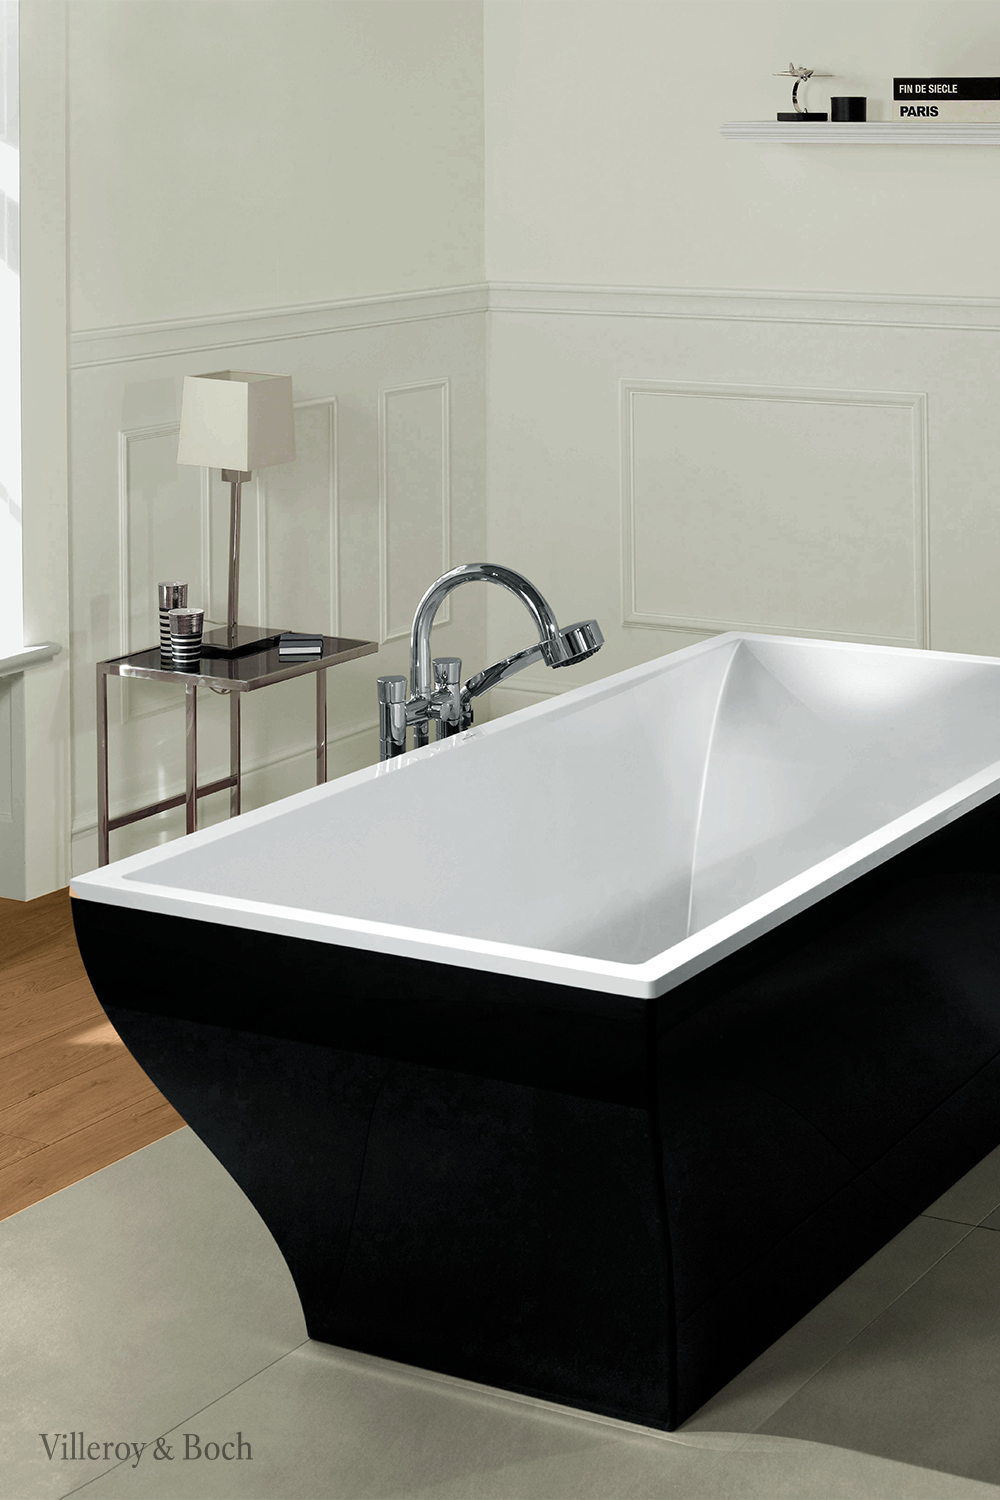 You Think A White Bathtub Is Not Exciting Enough For Your Interior Design Well Then Just Get A Black One And Make Sure Luxus Badezimmer Badezimmer Badewanne